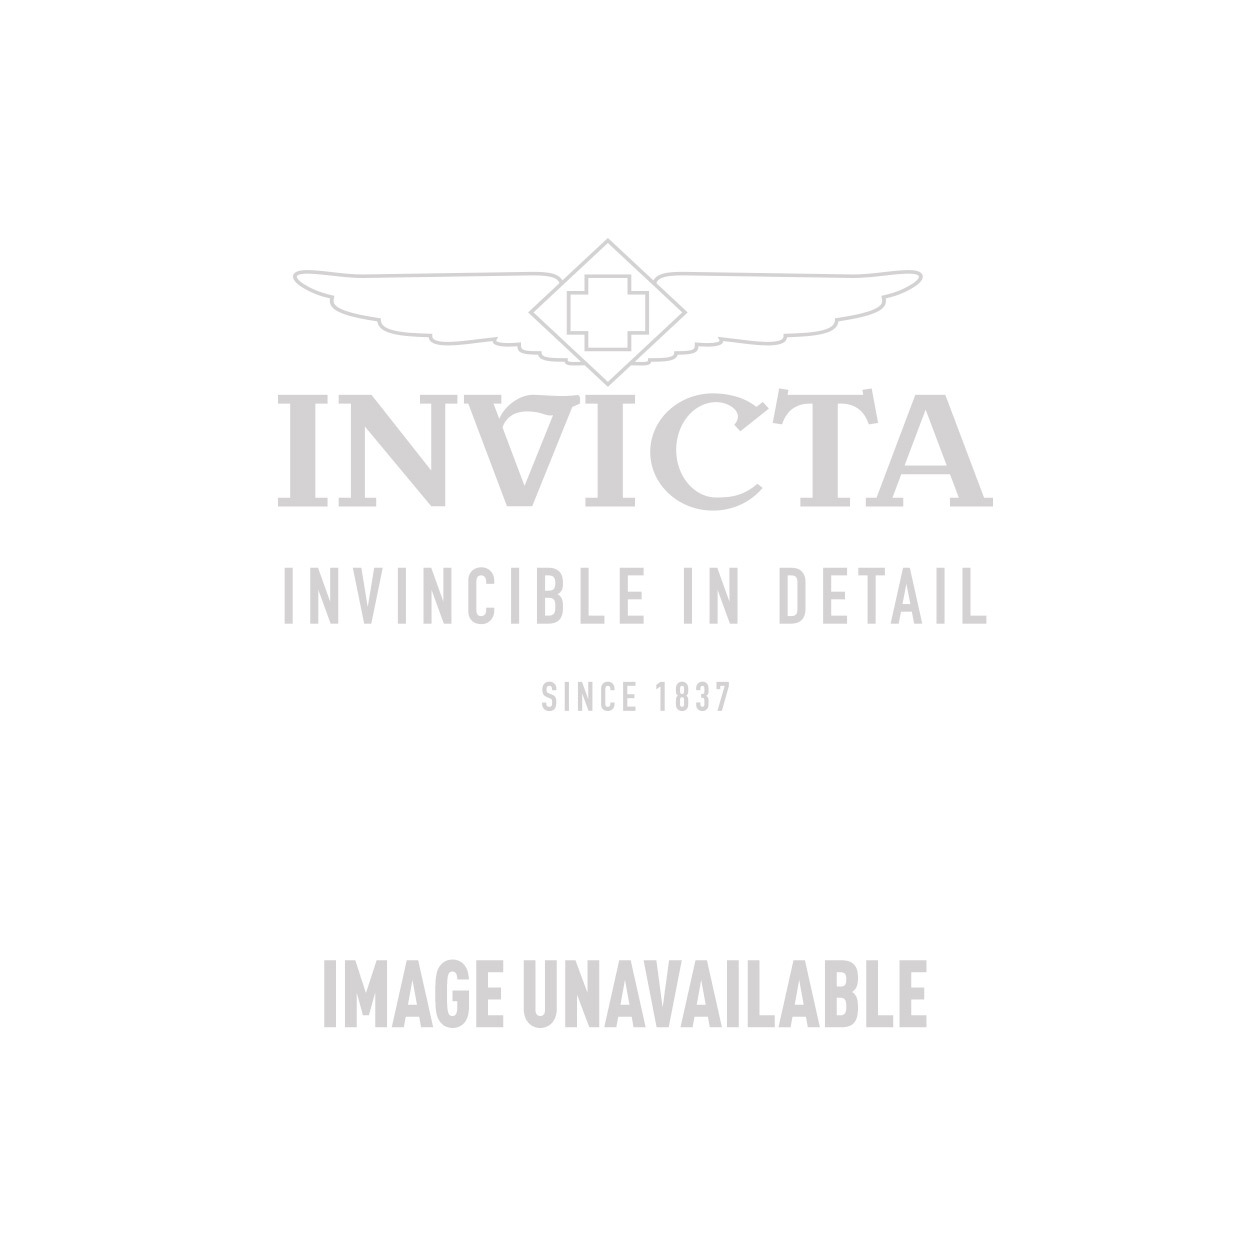 Invicta Specialty Quartz Watch - Gold, Rose Gold case with Rose Gold tone Stainless Steel band - Model 17755